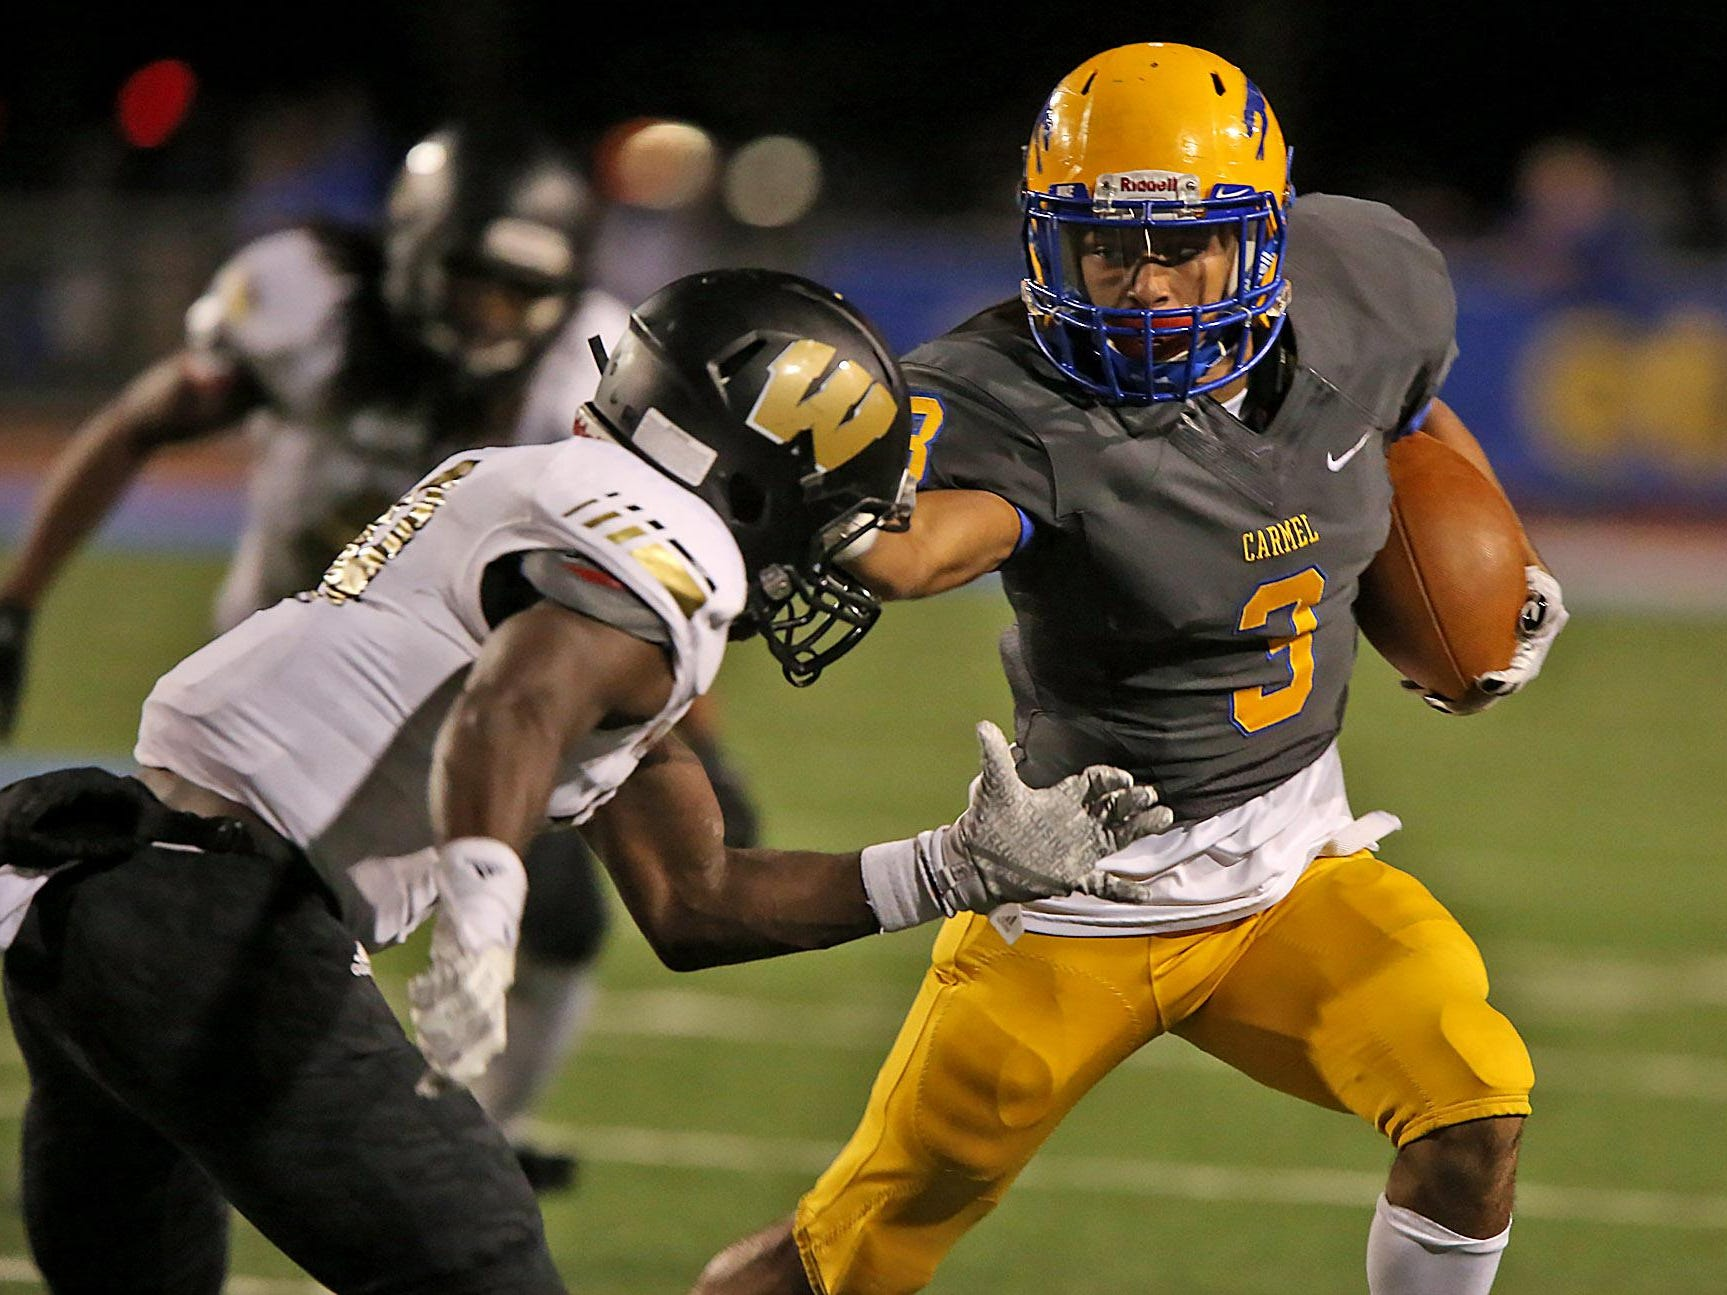 Carmel's #3 Jalen Walker makes a run as Warren Central's #19 Darien Rivers tries to stop him in second half during the Warren Central at Carmel High School football game, Friday, October 9, 2015. Carmel won 30-20.